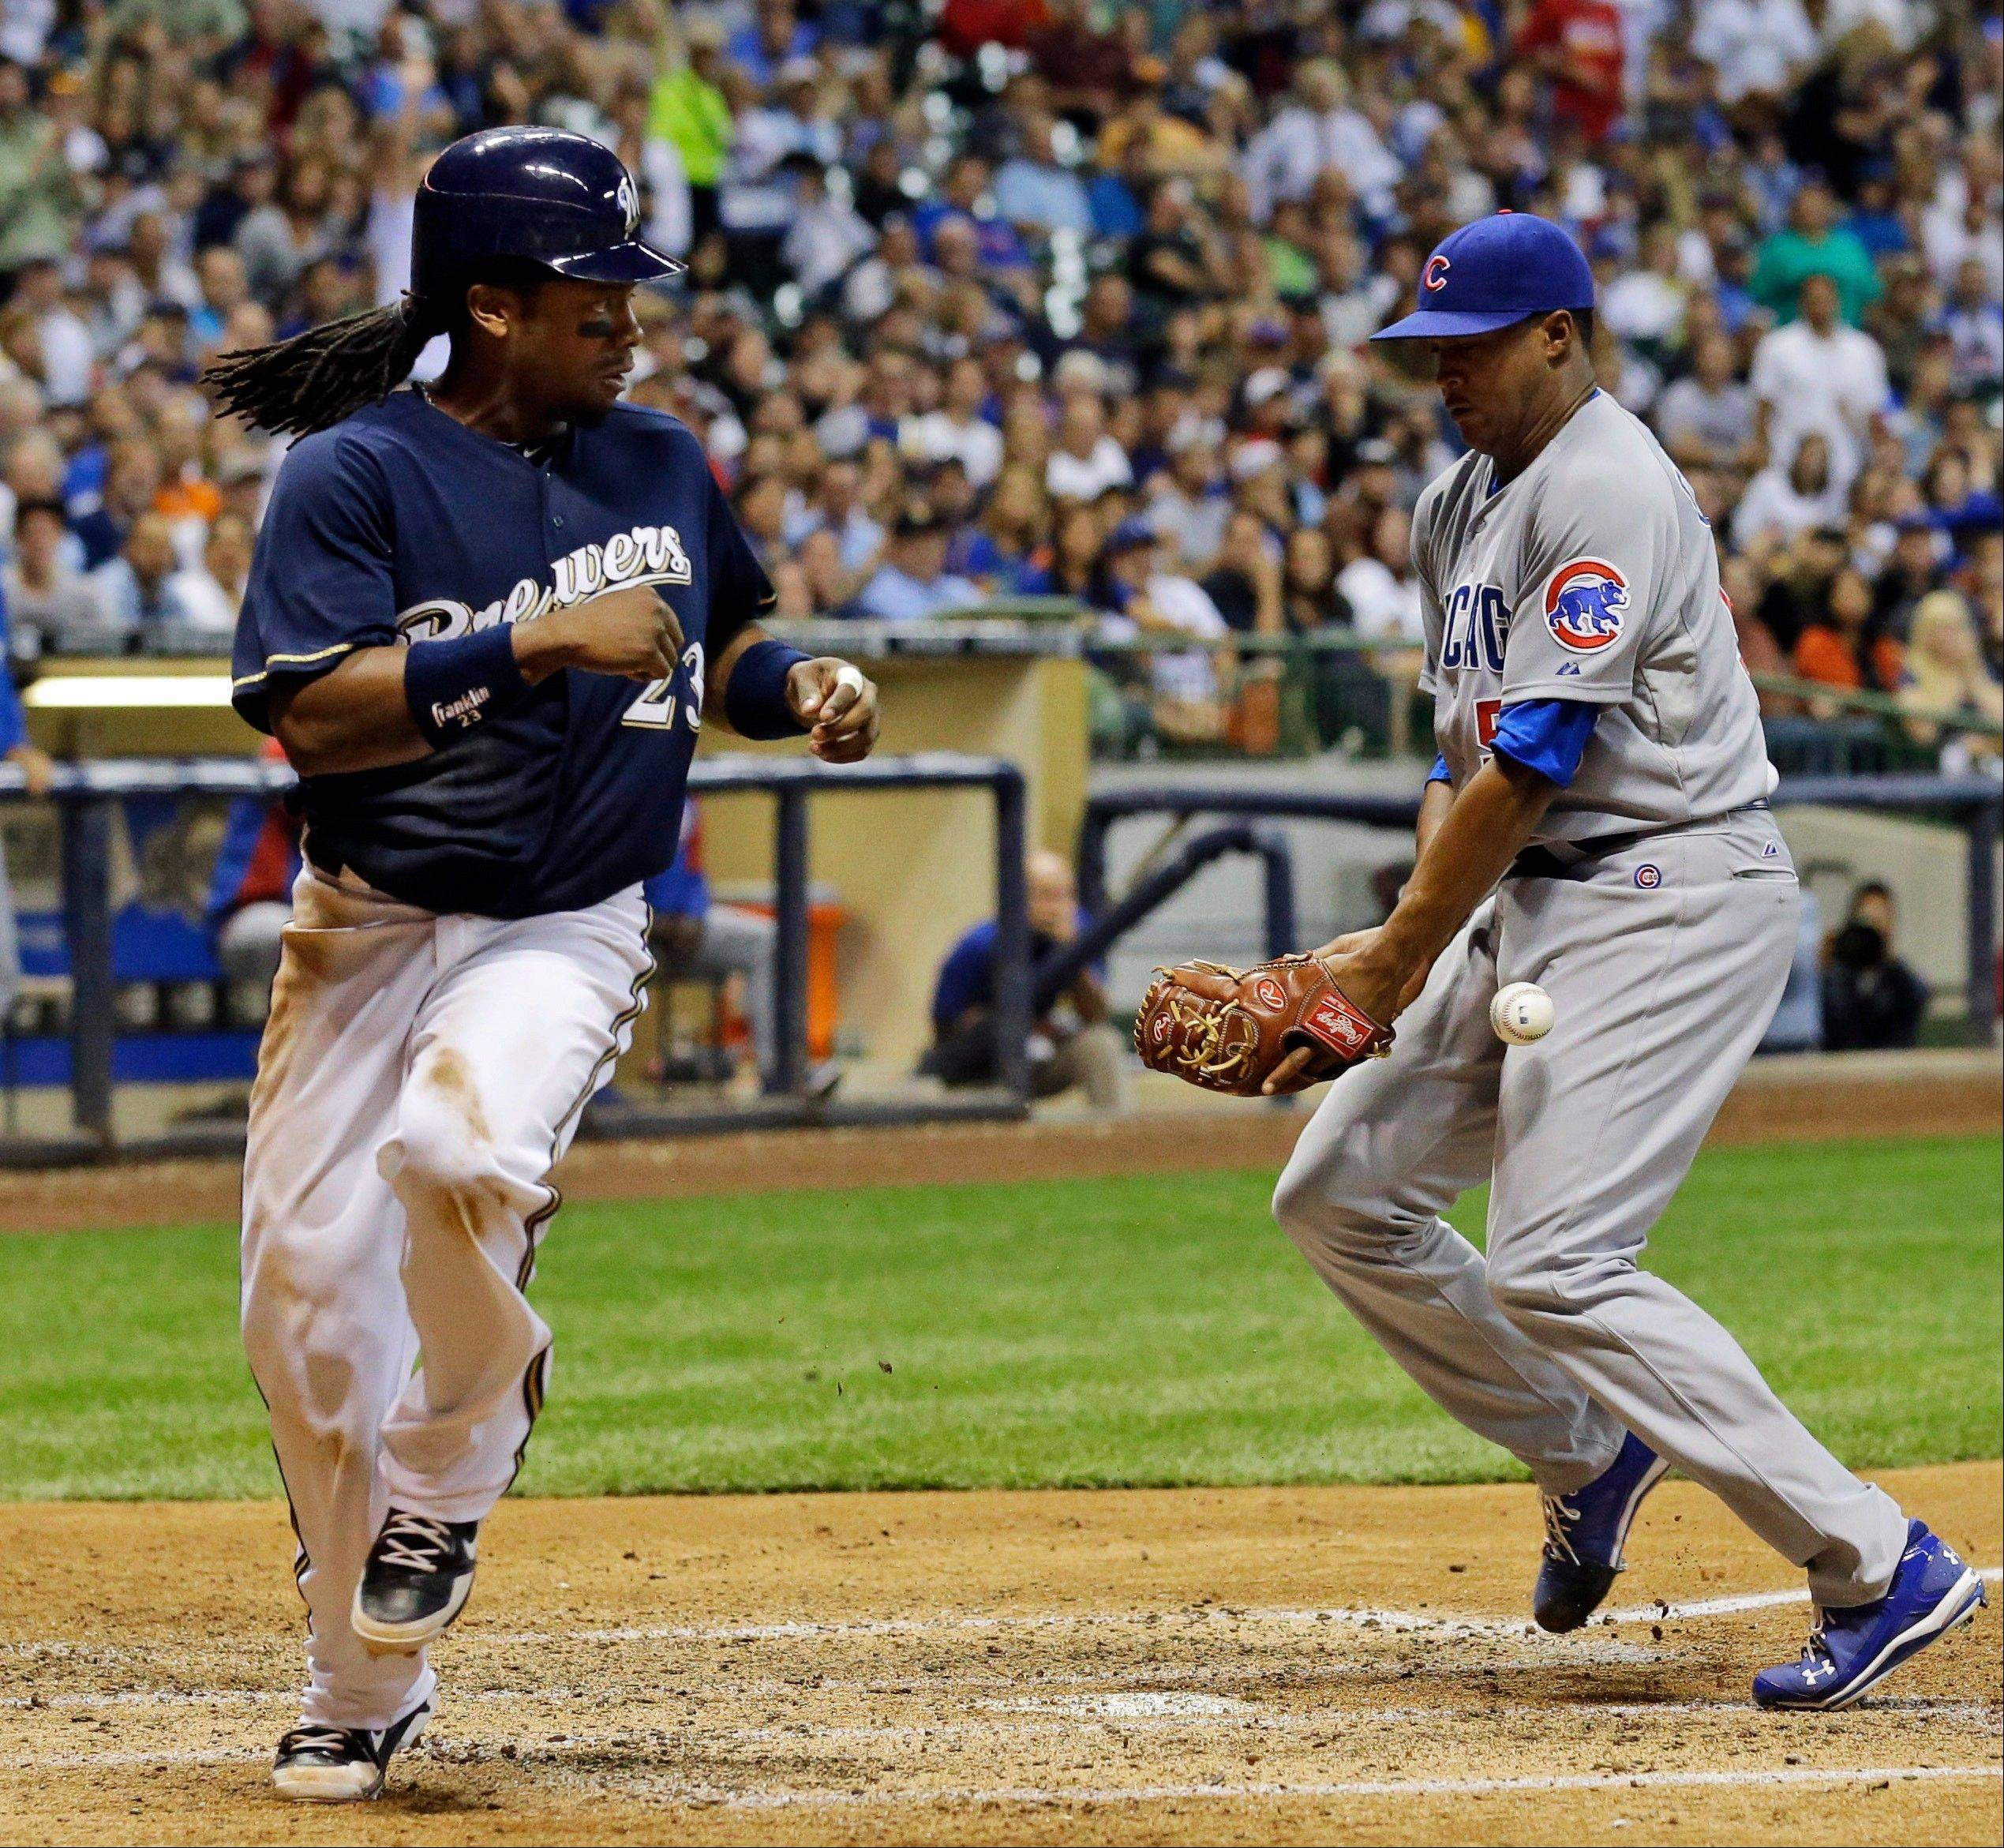 Milwaukee Brewers' Rickie Weeks scores from third on a wild pitch as Chicago Cubs relief pitcher Alberto Cabrera cannot handle the throw during the sixth inning of a baseball game, Tuesday in Milwaukee.